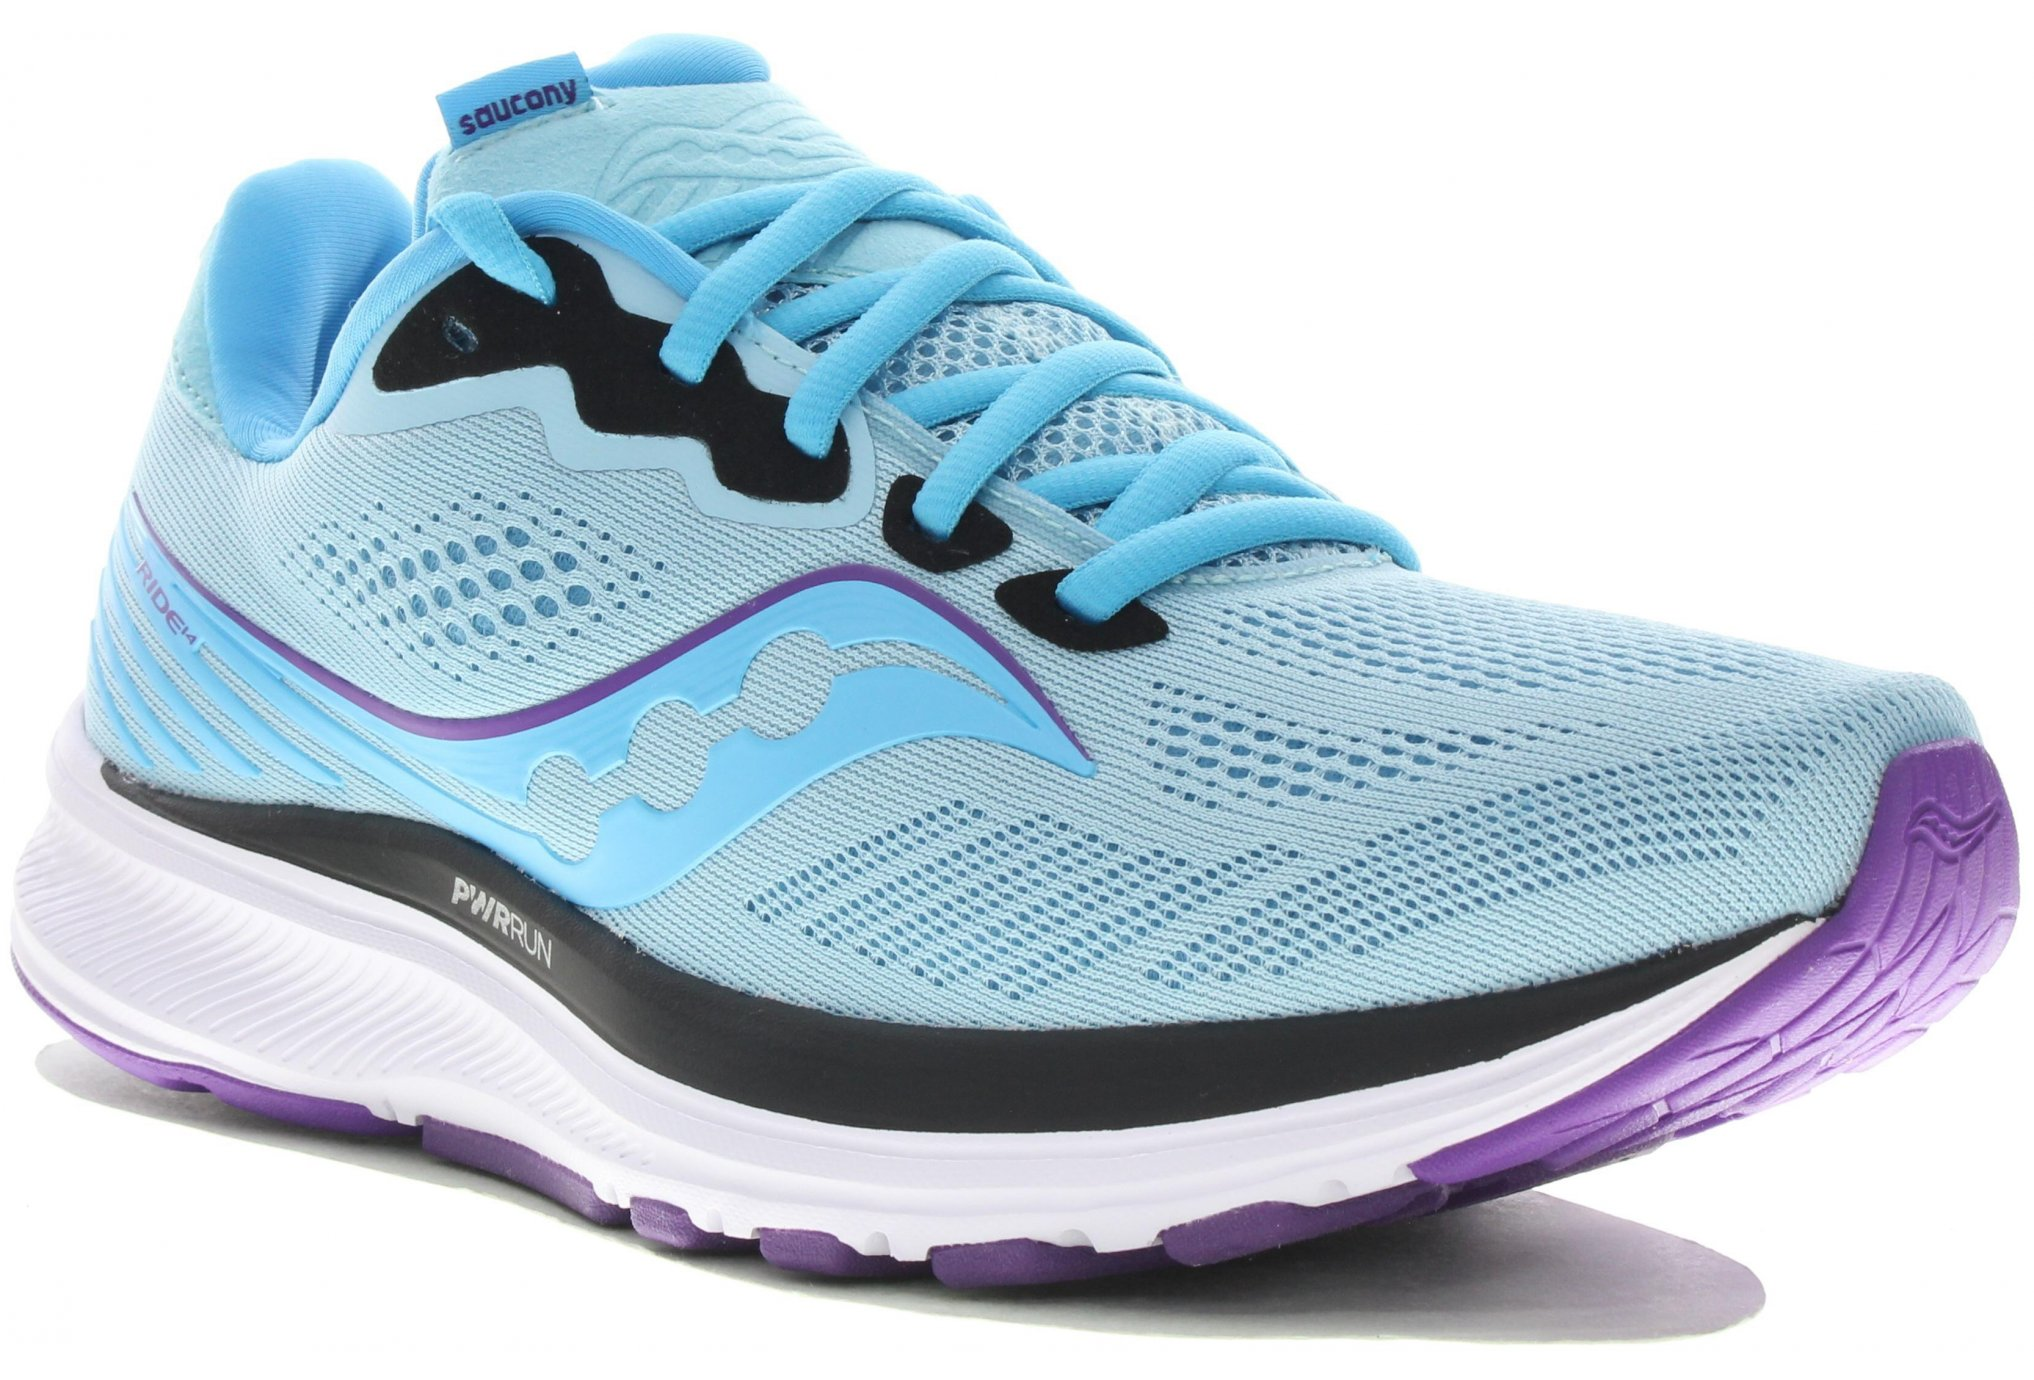 Saucony Ride 14 W Chaussures running femme